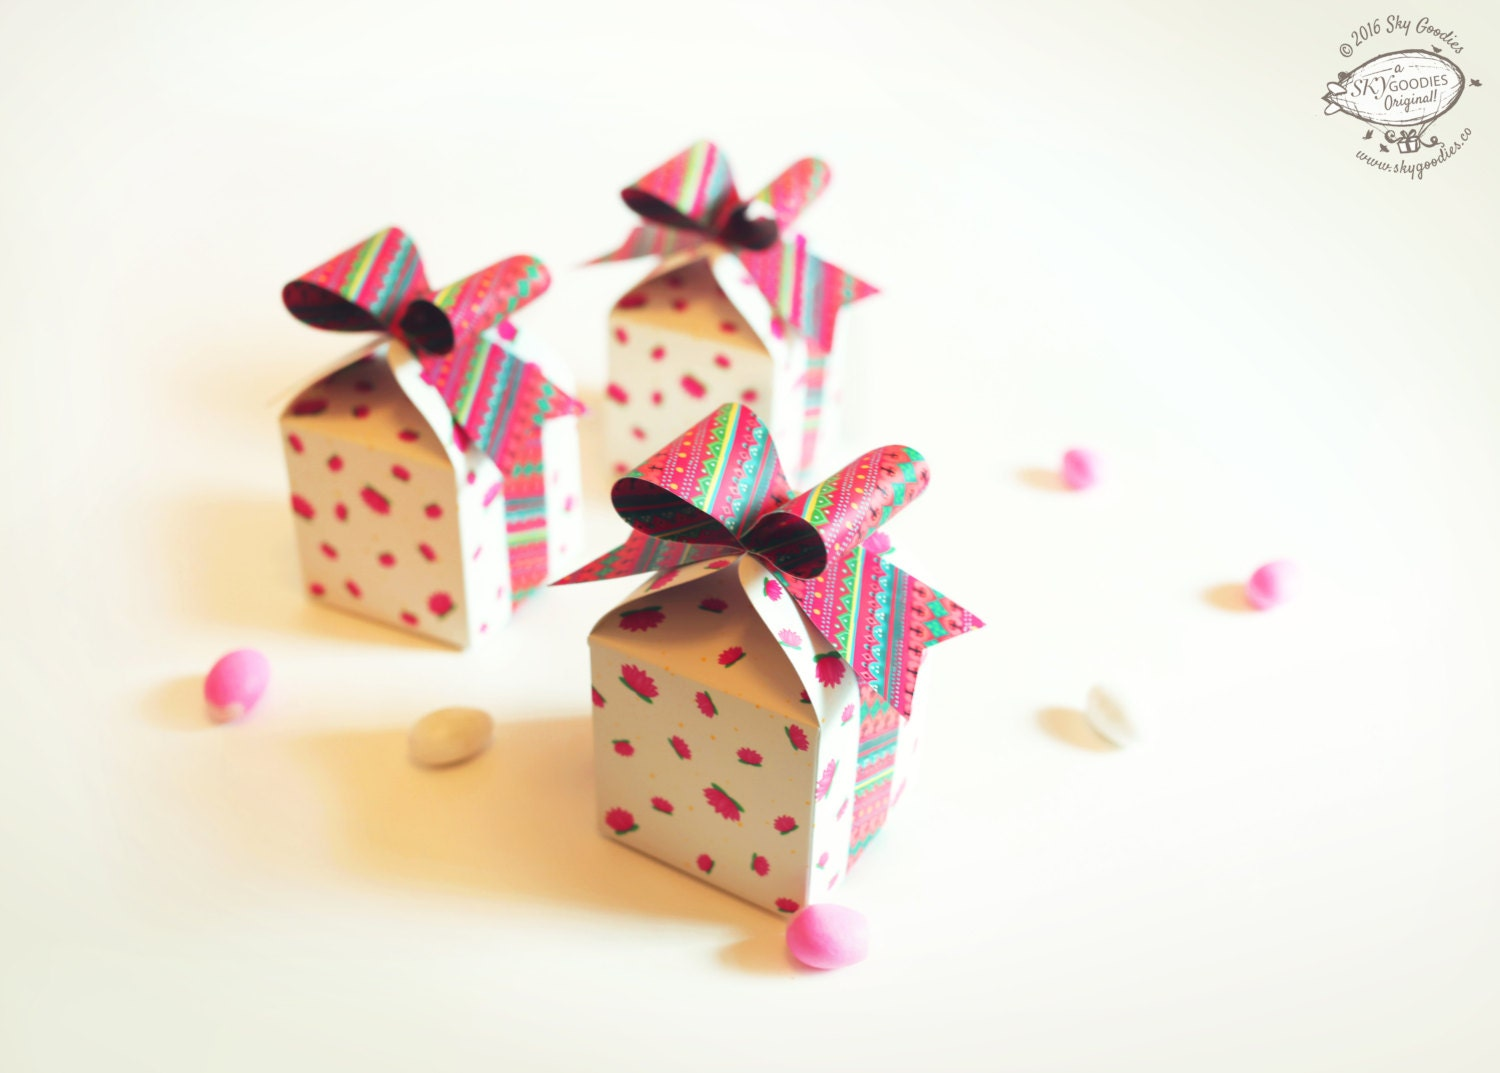 Physical Item, Set of 3 Bow Gift Box Party Favors: White n Pink ...